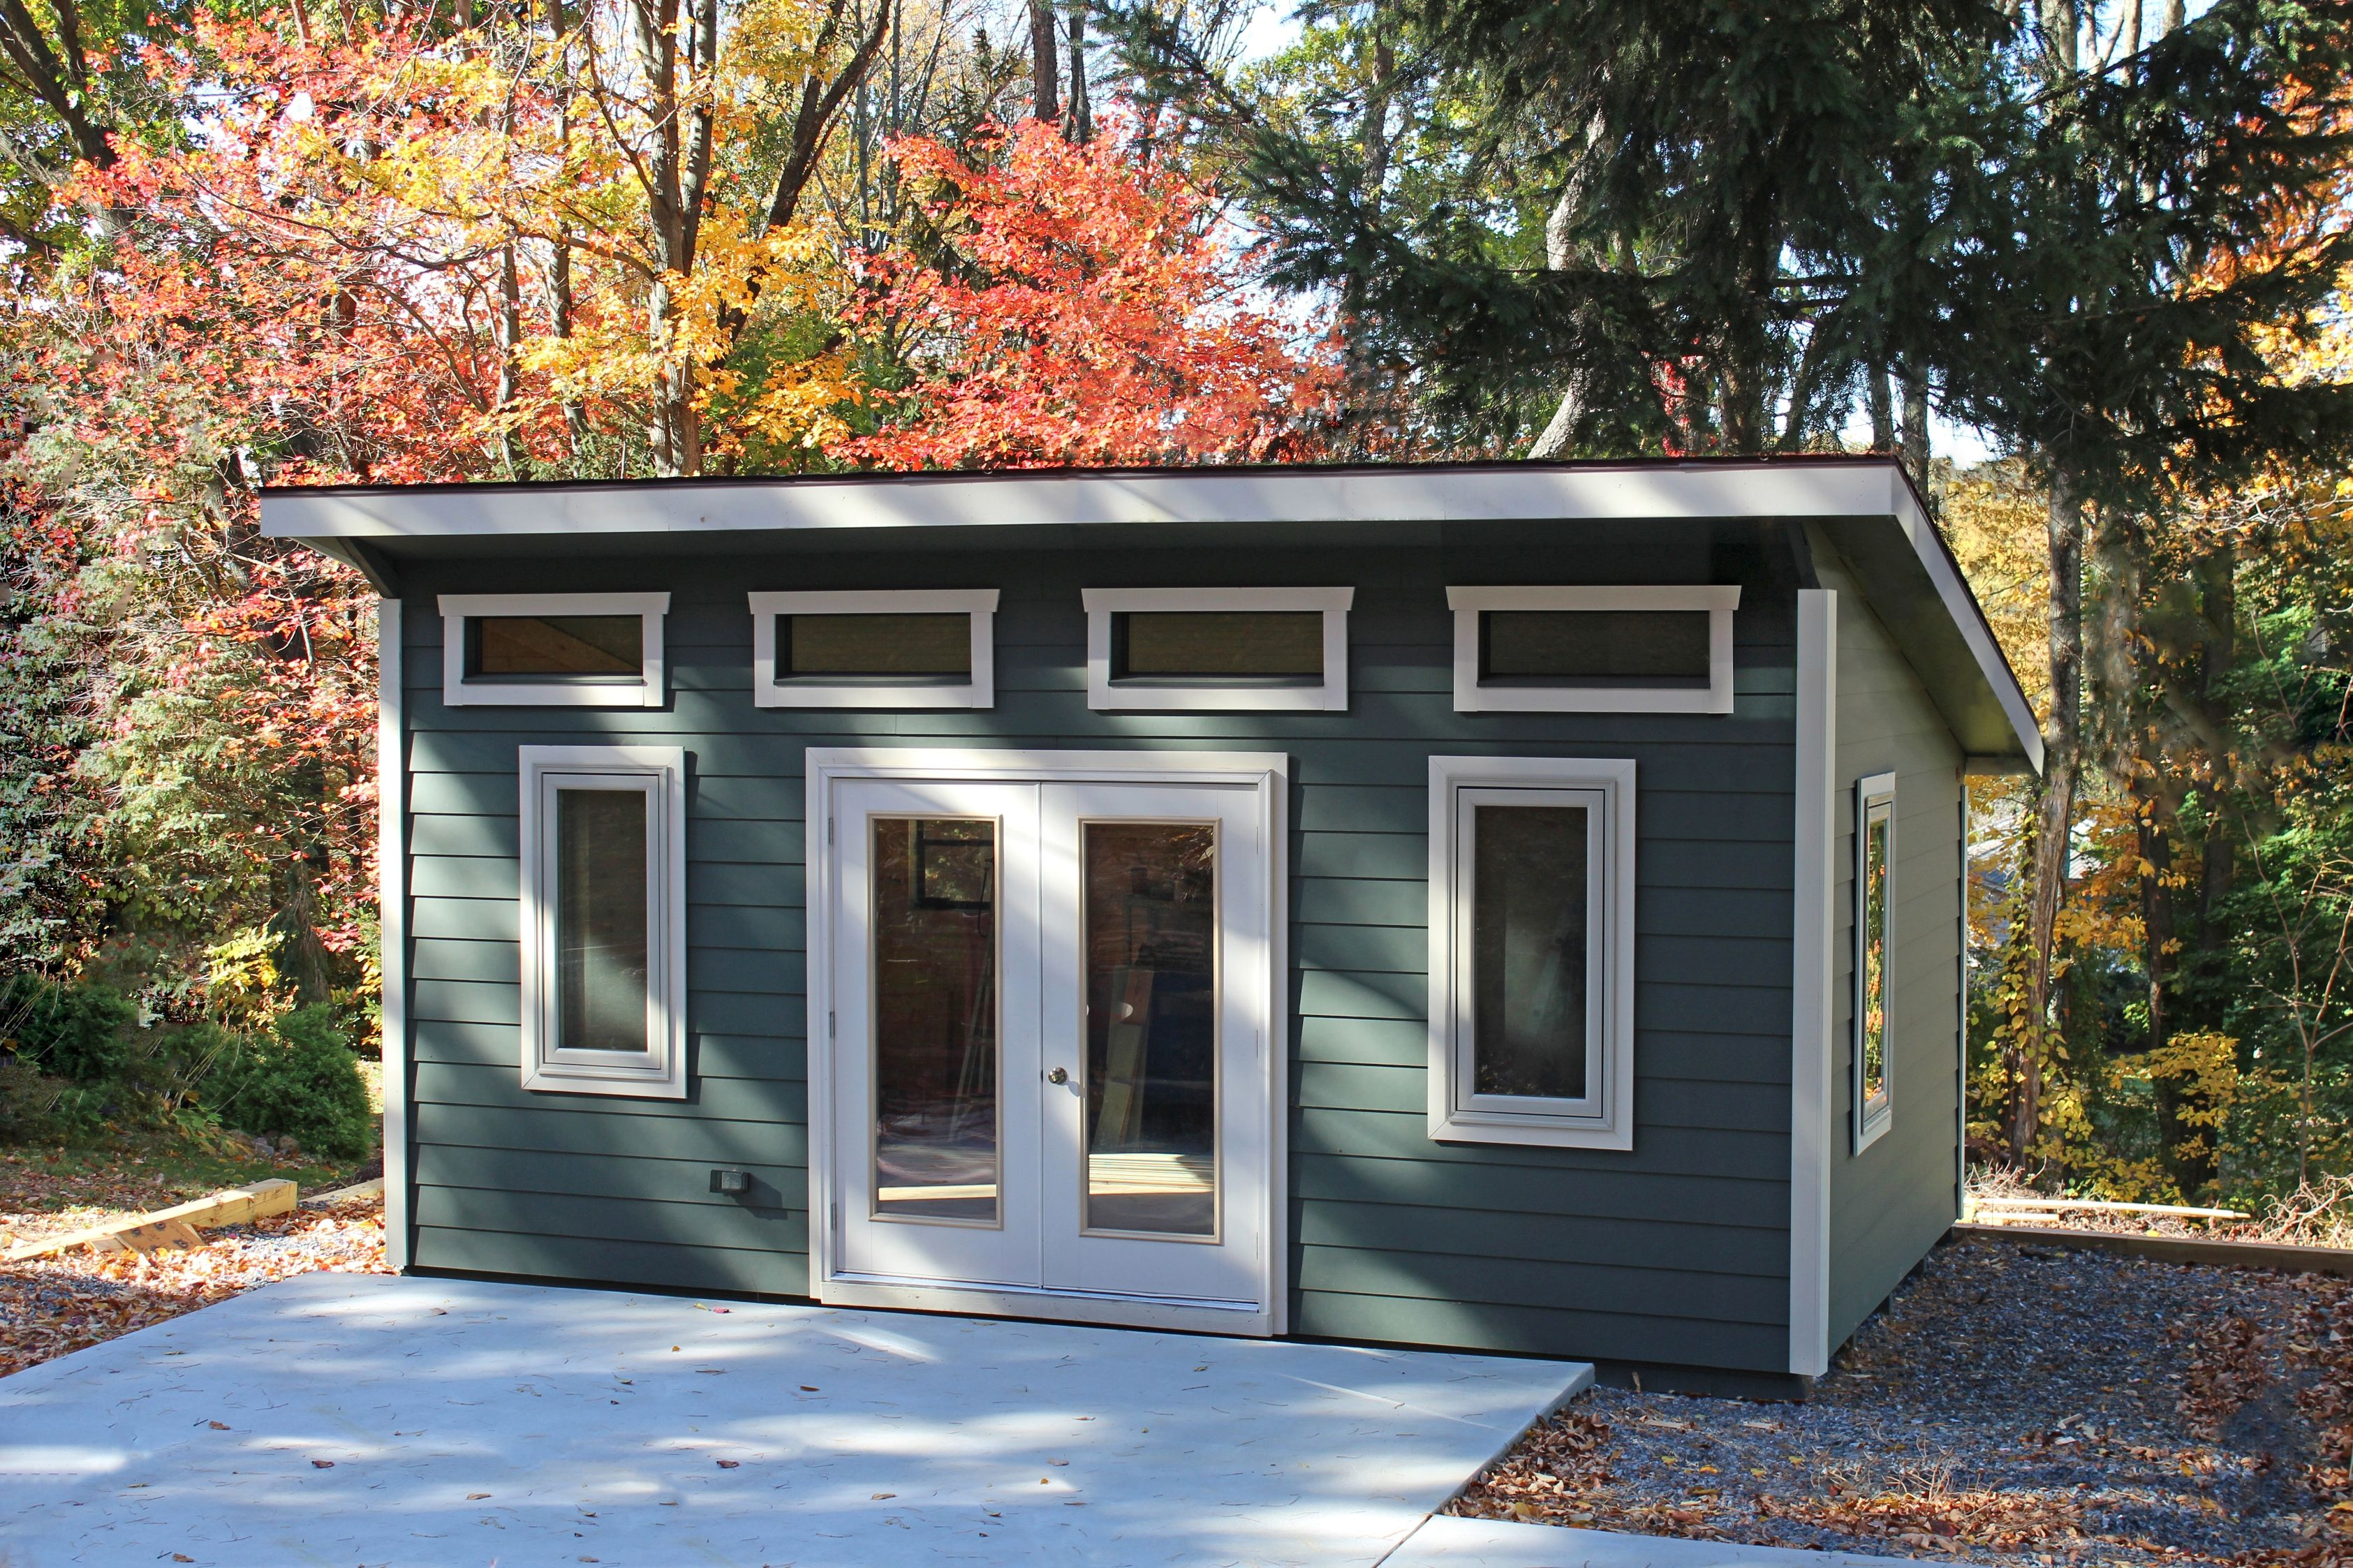 12 X20 Lap Siding Studio Shed Visit Our Website At Www Lappstructures Com For More Information Or To Place Your Order Today Studio Shed Shed Shed Homes